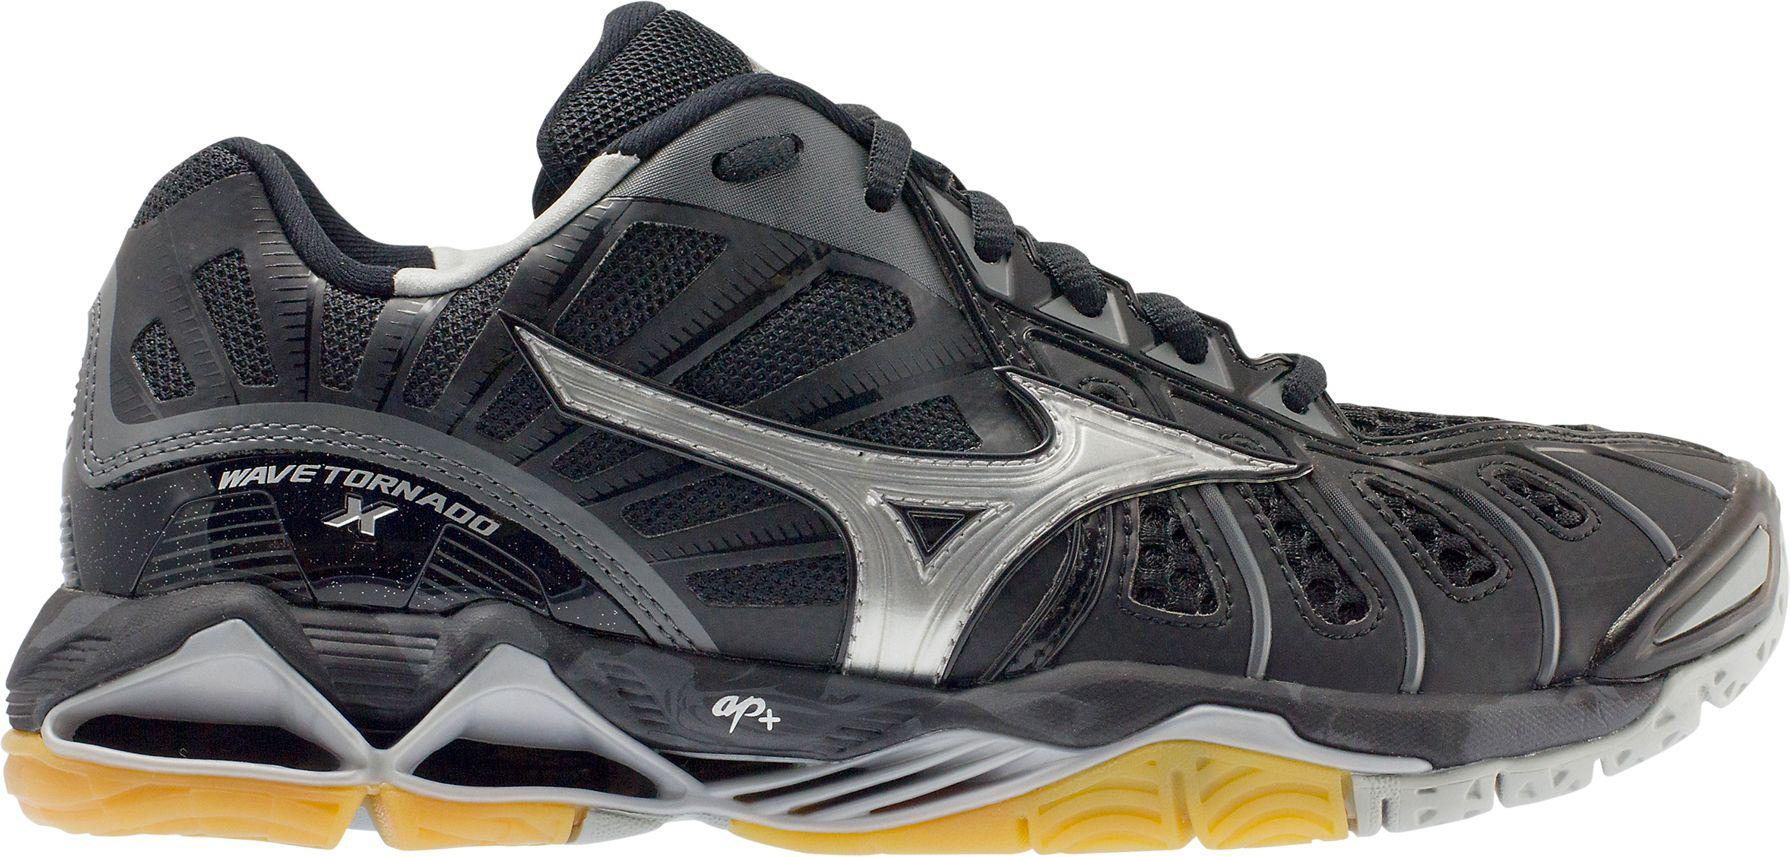 mizuno wave tornado x amazon official online qatar